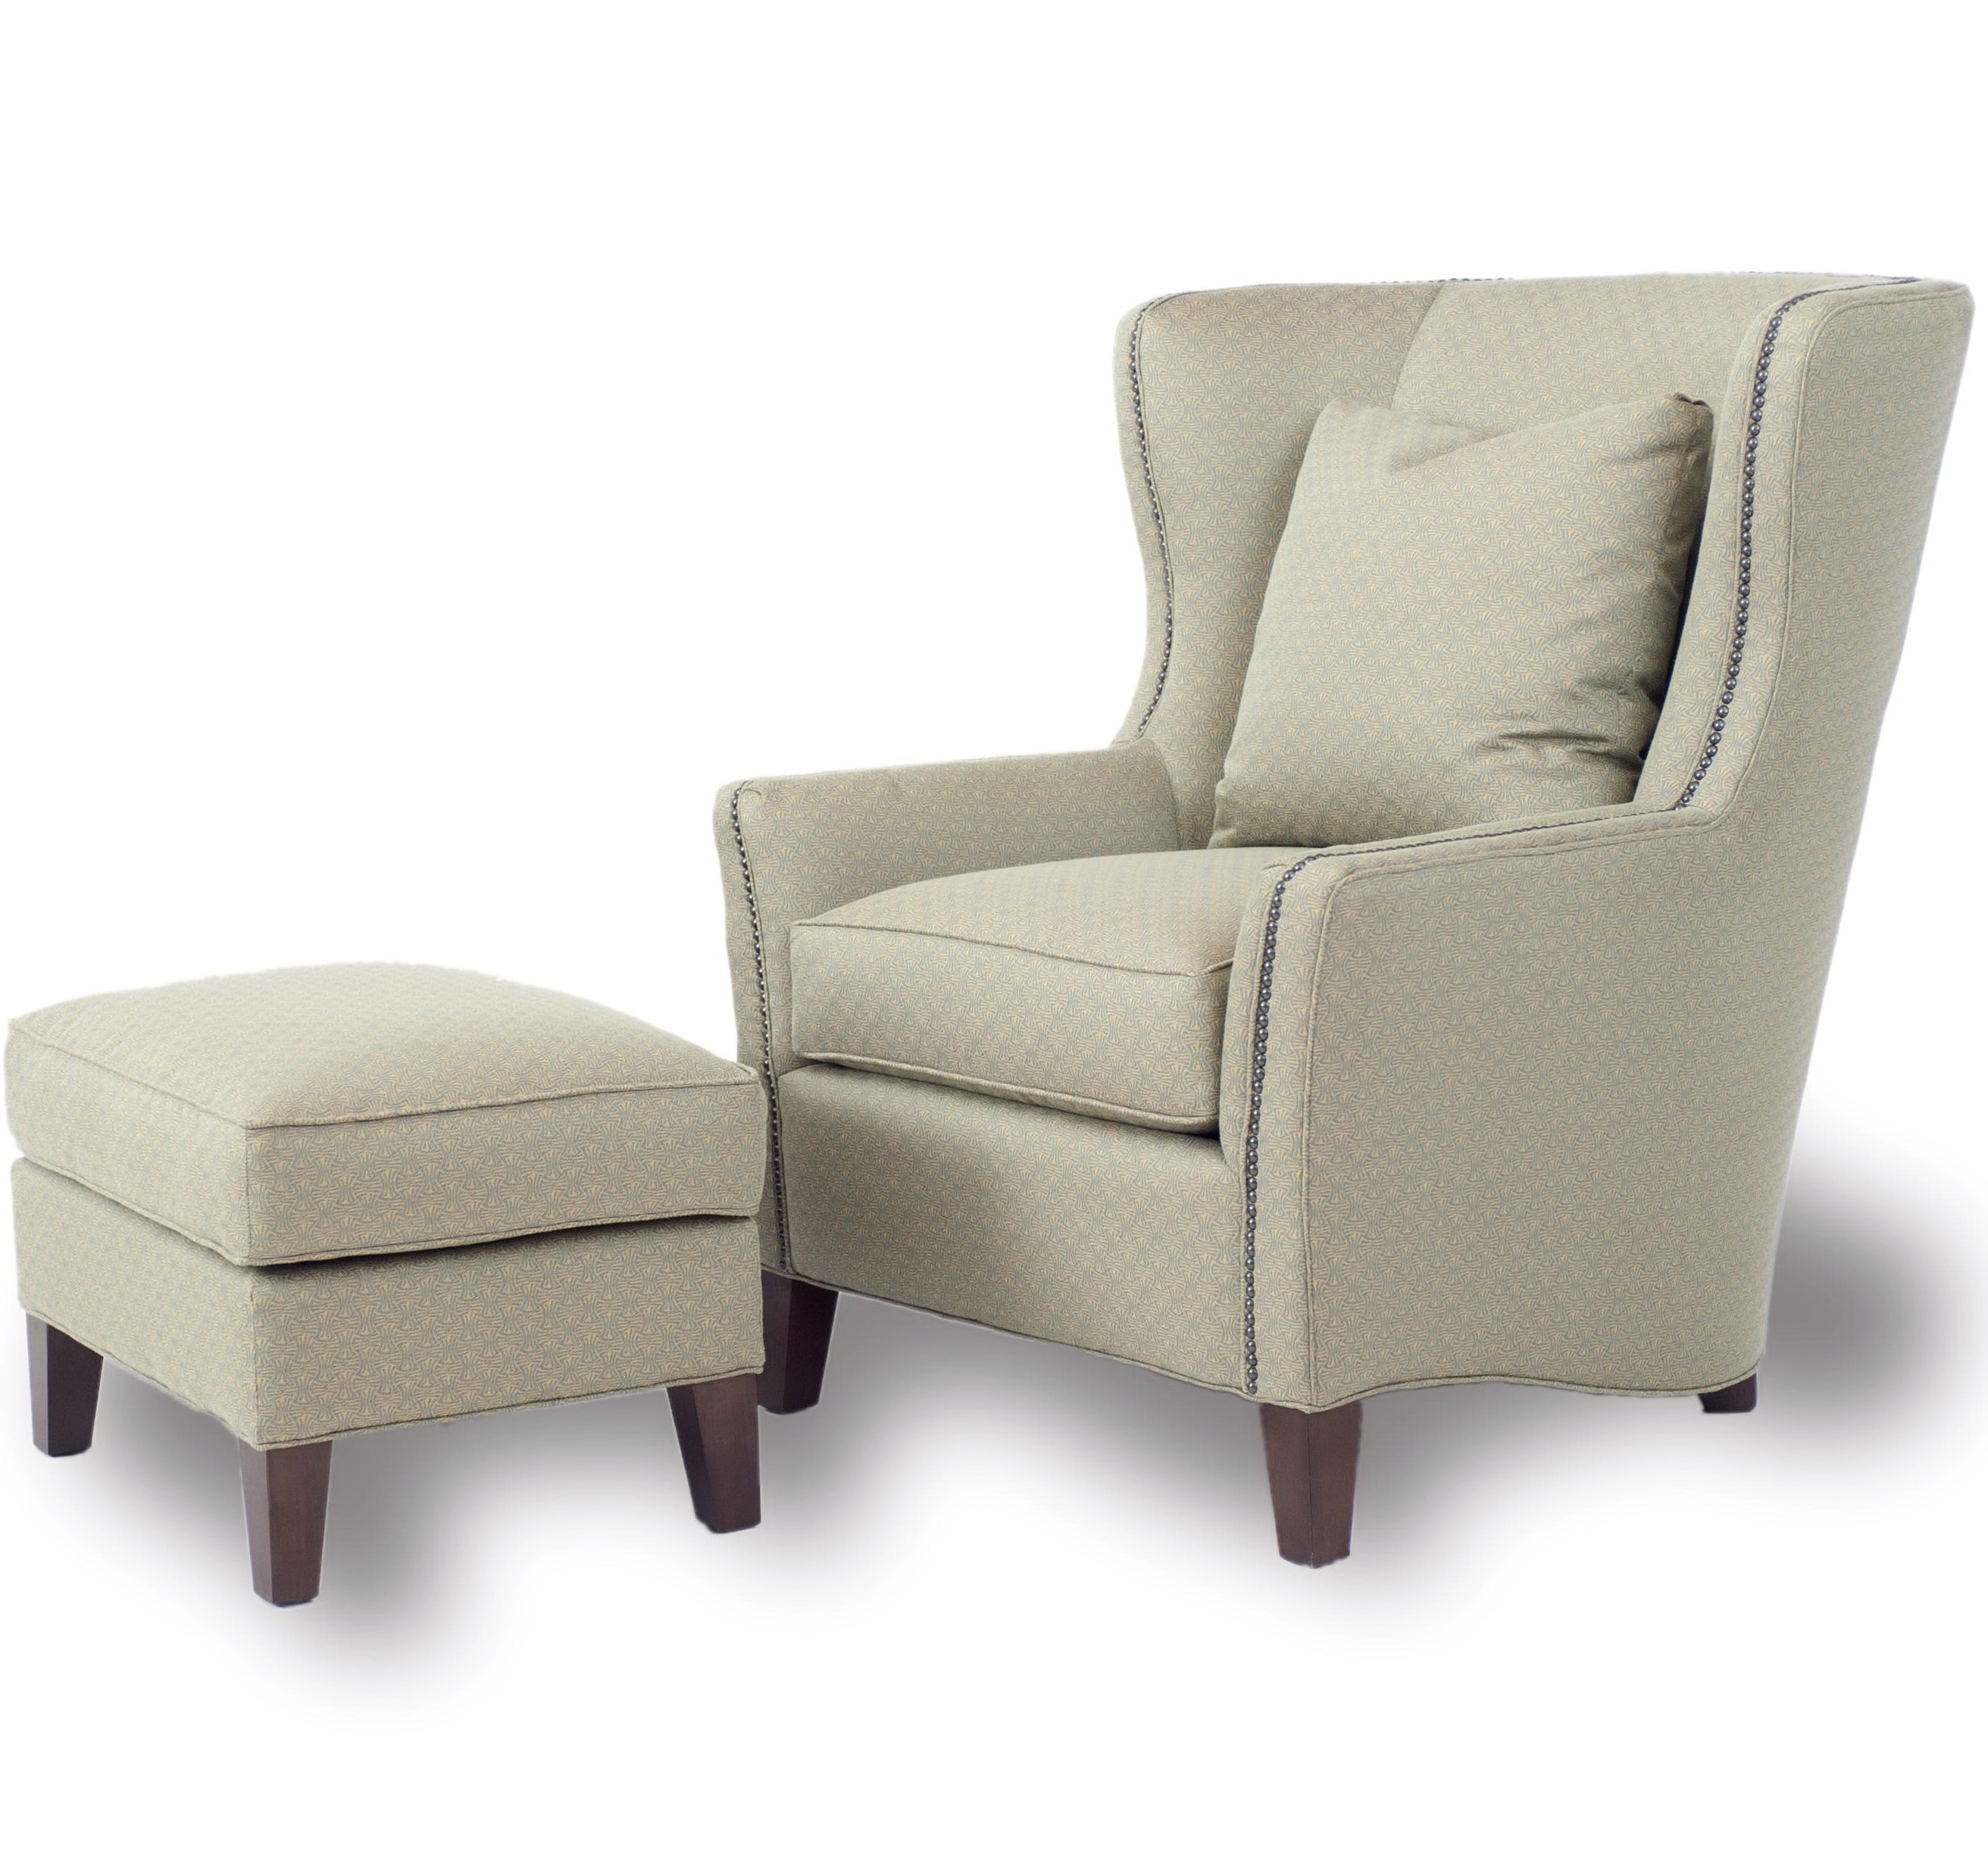 White Accent Chair With Ottoman Home Design Ideas